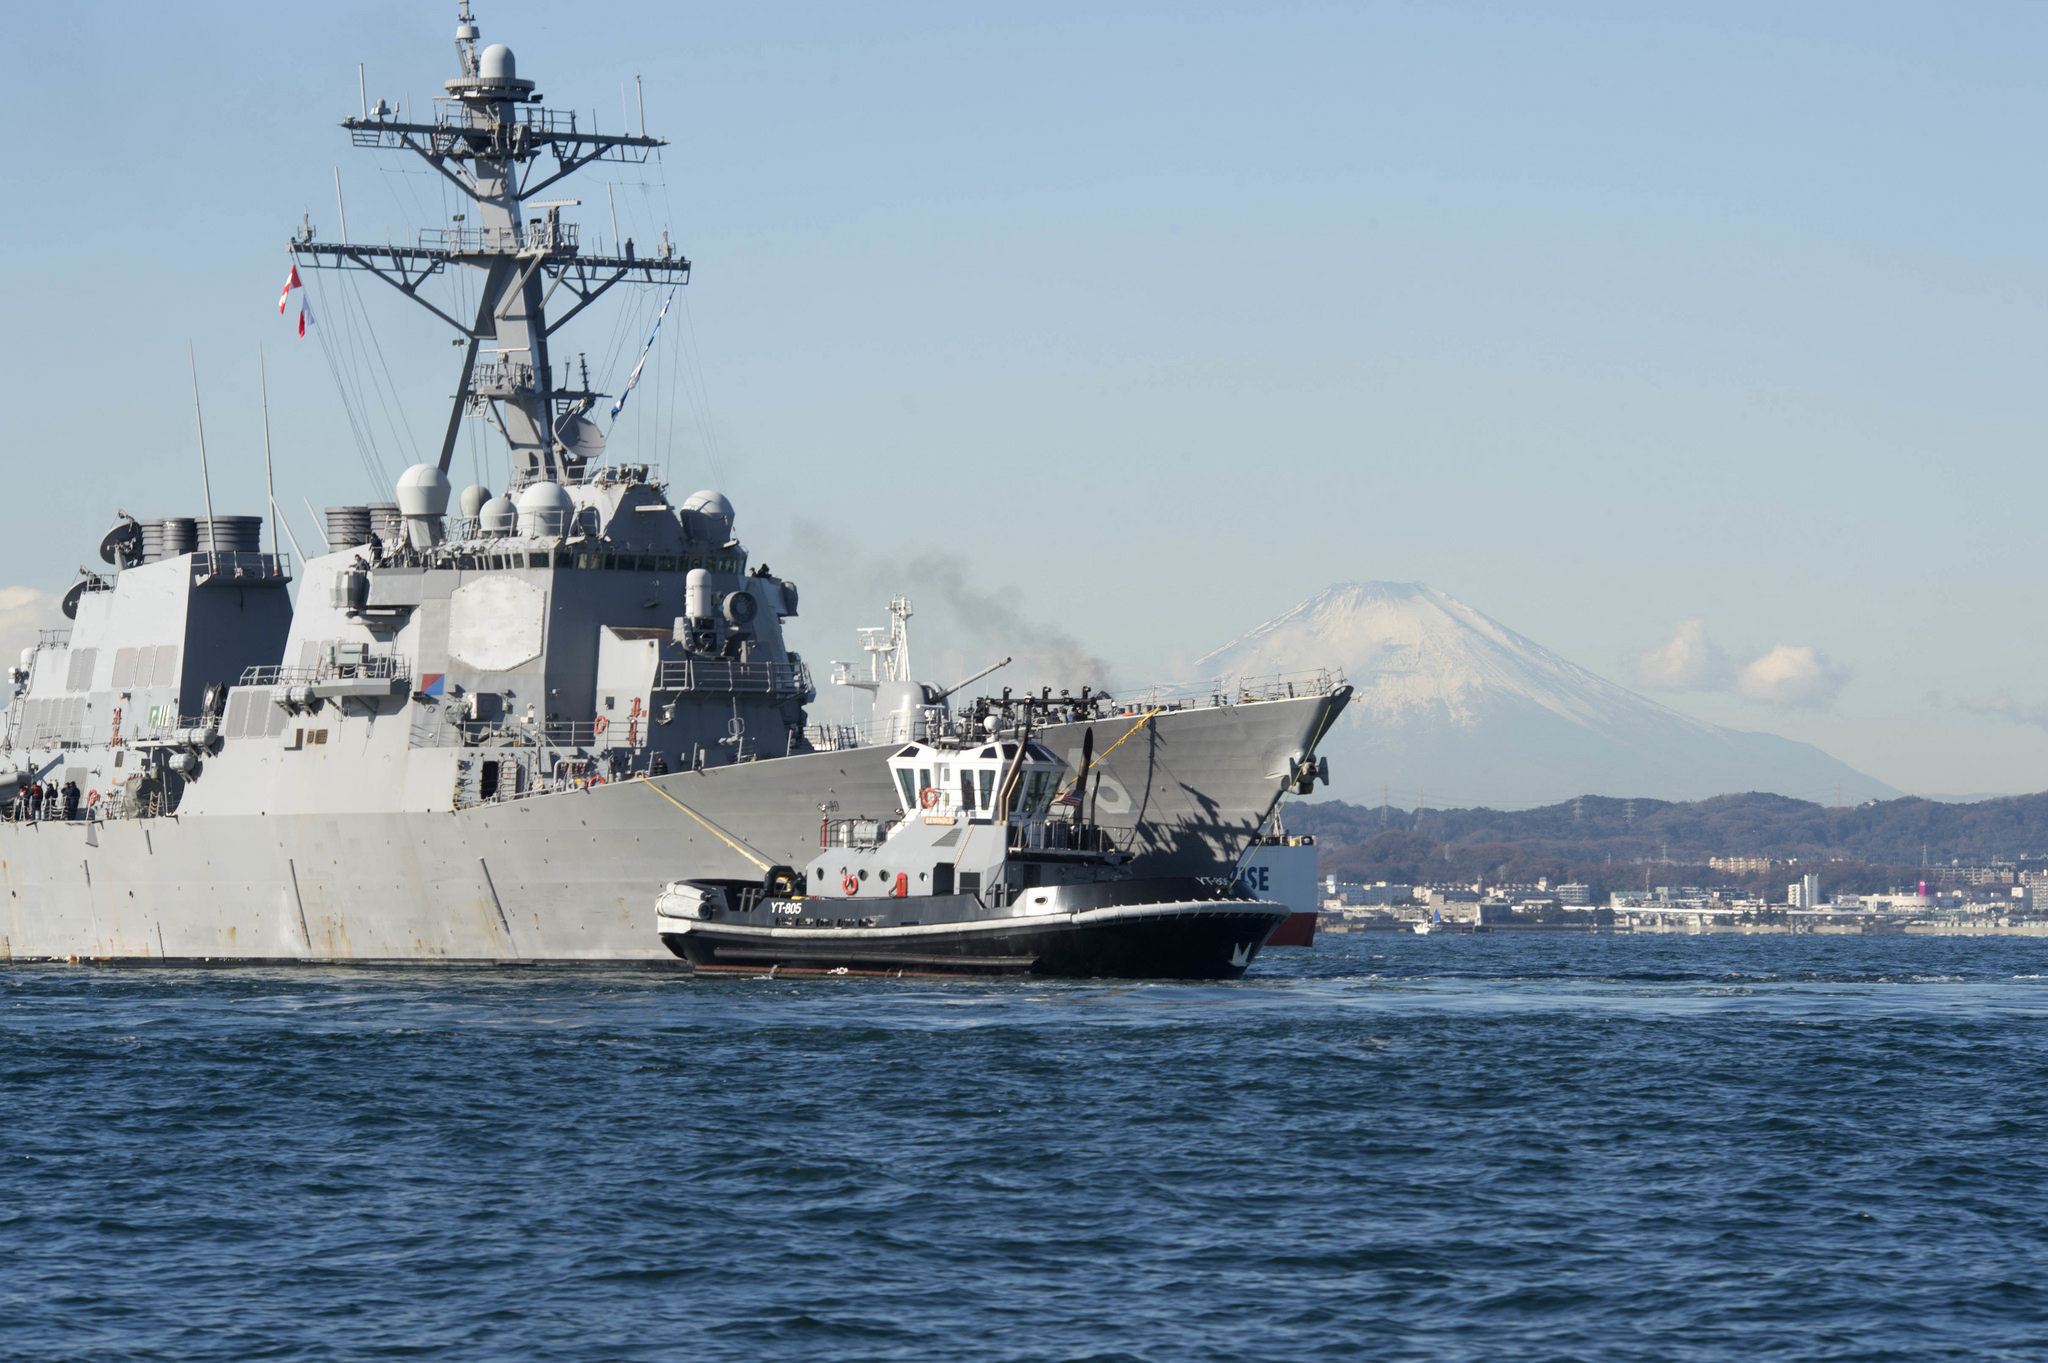 The Arleigh Burke-class guided-missile destroyer USS John S. McCain (DDG 56) is towed to the pier at Fleet Activities Yokosuka on Dec. 13, 2017. John S. McCain will undergo repairs at Ship Repair Facility – Japan Regional Maintenance Center in Yokosuka. (MC2 William McCann/Navy)